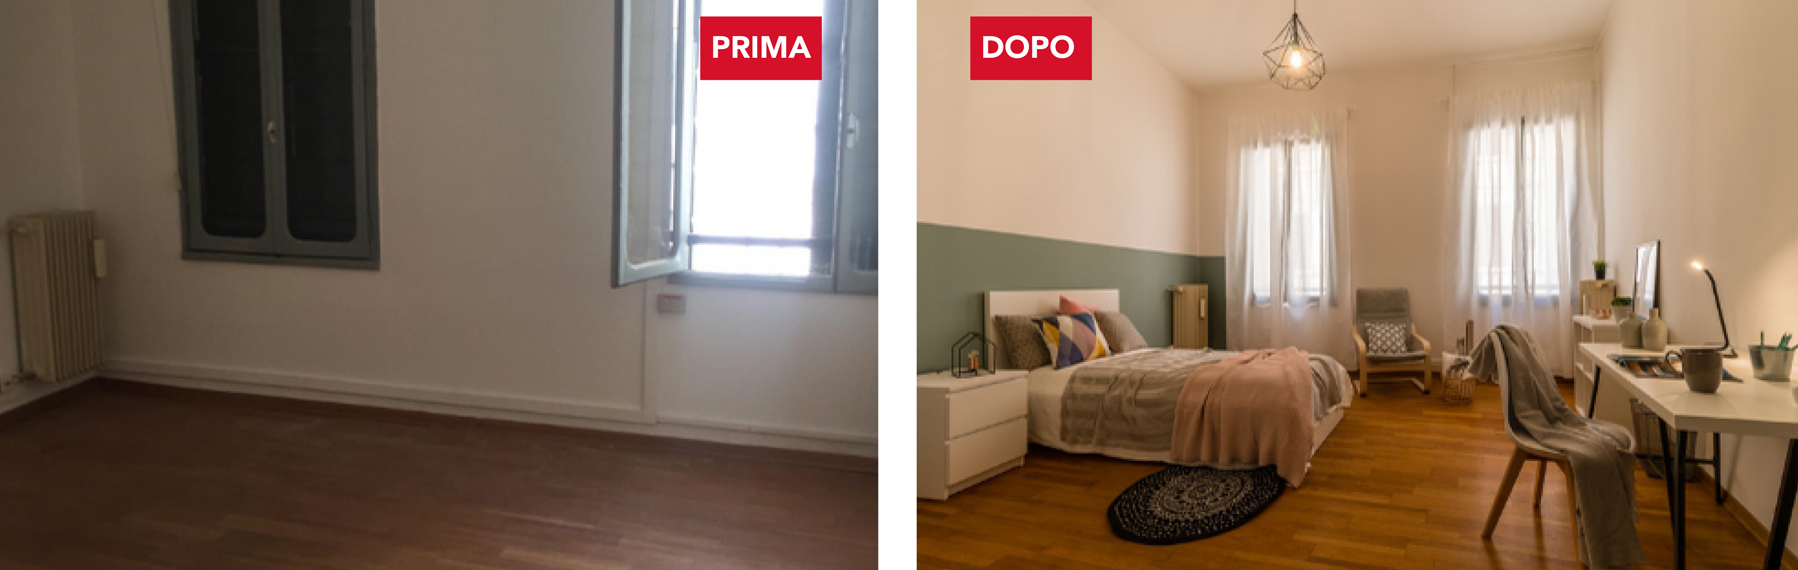 home staging prima e dopo